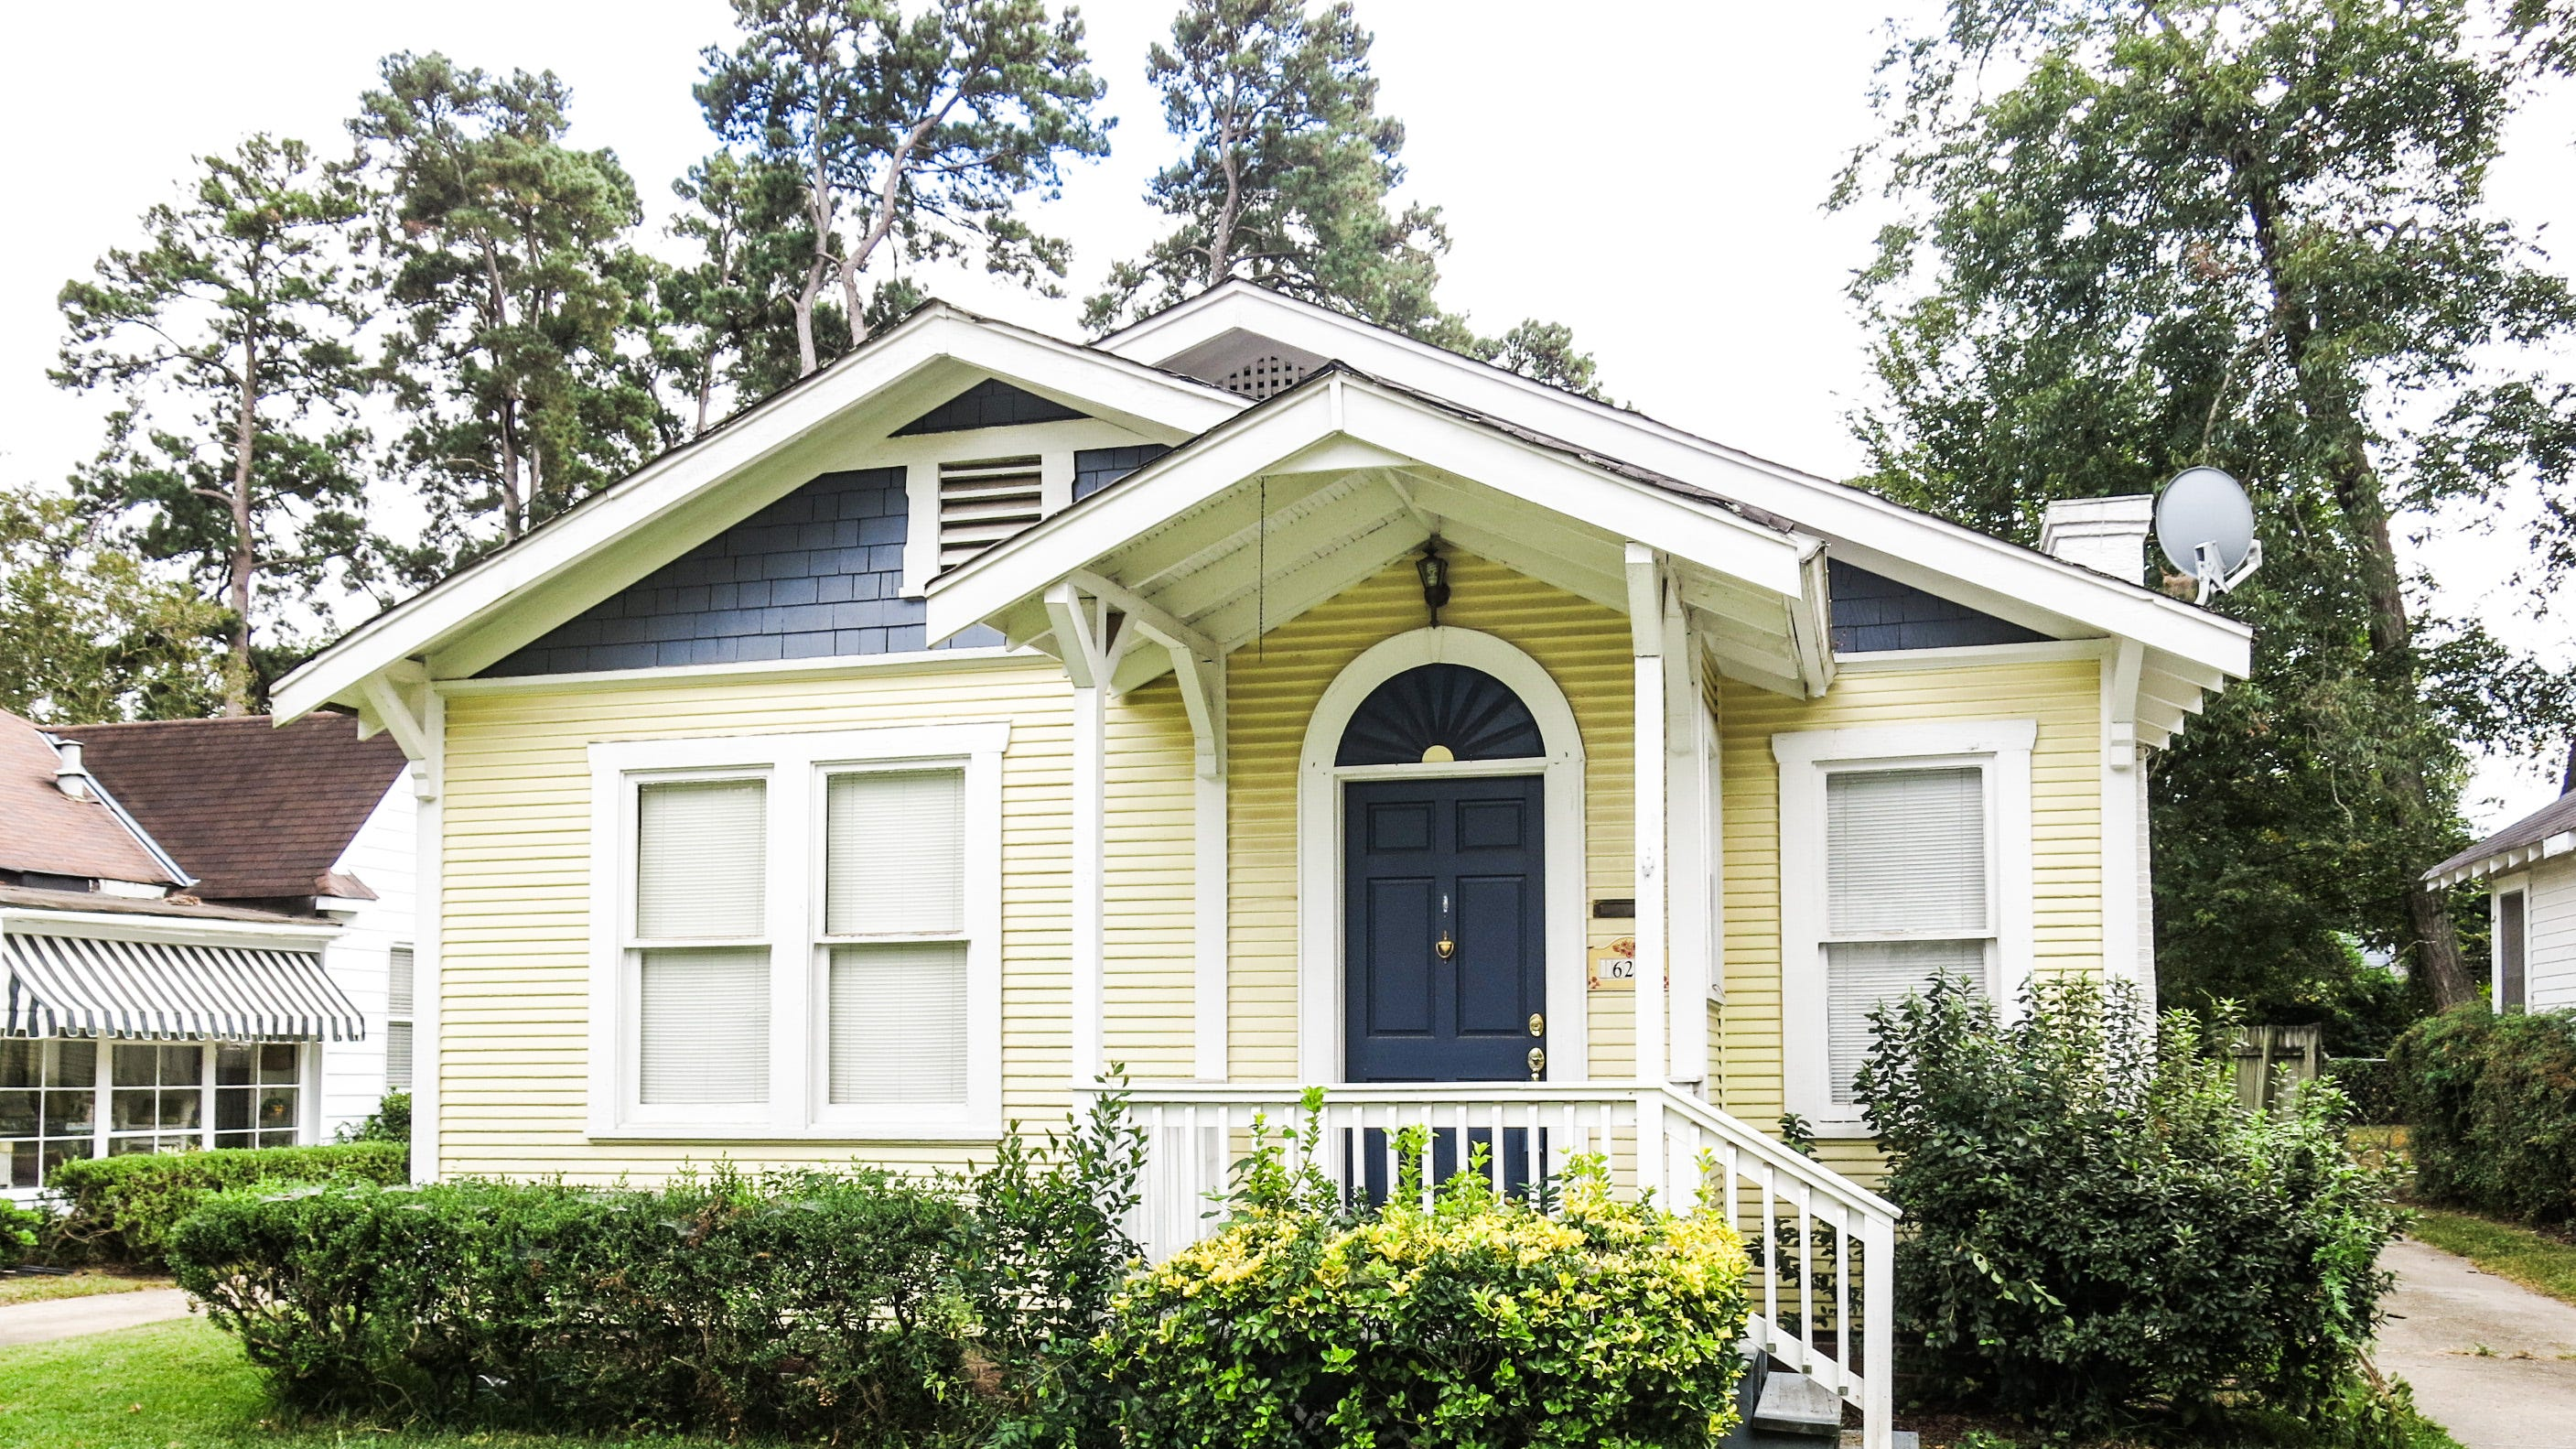 629 Stephenson St.,   Shreveport  Price: $139,900  Details: 3 bedrooms, 1 bathroom, 1,418 square feet  Special features: Historic craftsman style home with original hardwood floors, most of the home restored,   2 car garage, covered and uncovered deck, move-in ready   for a new owner.   Contact: Robin Ramsey, 573-1916